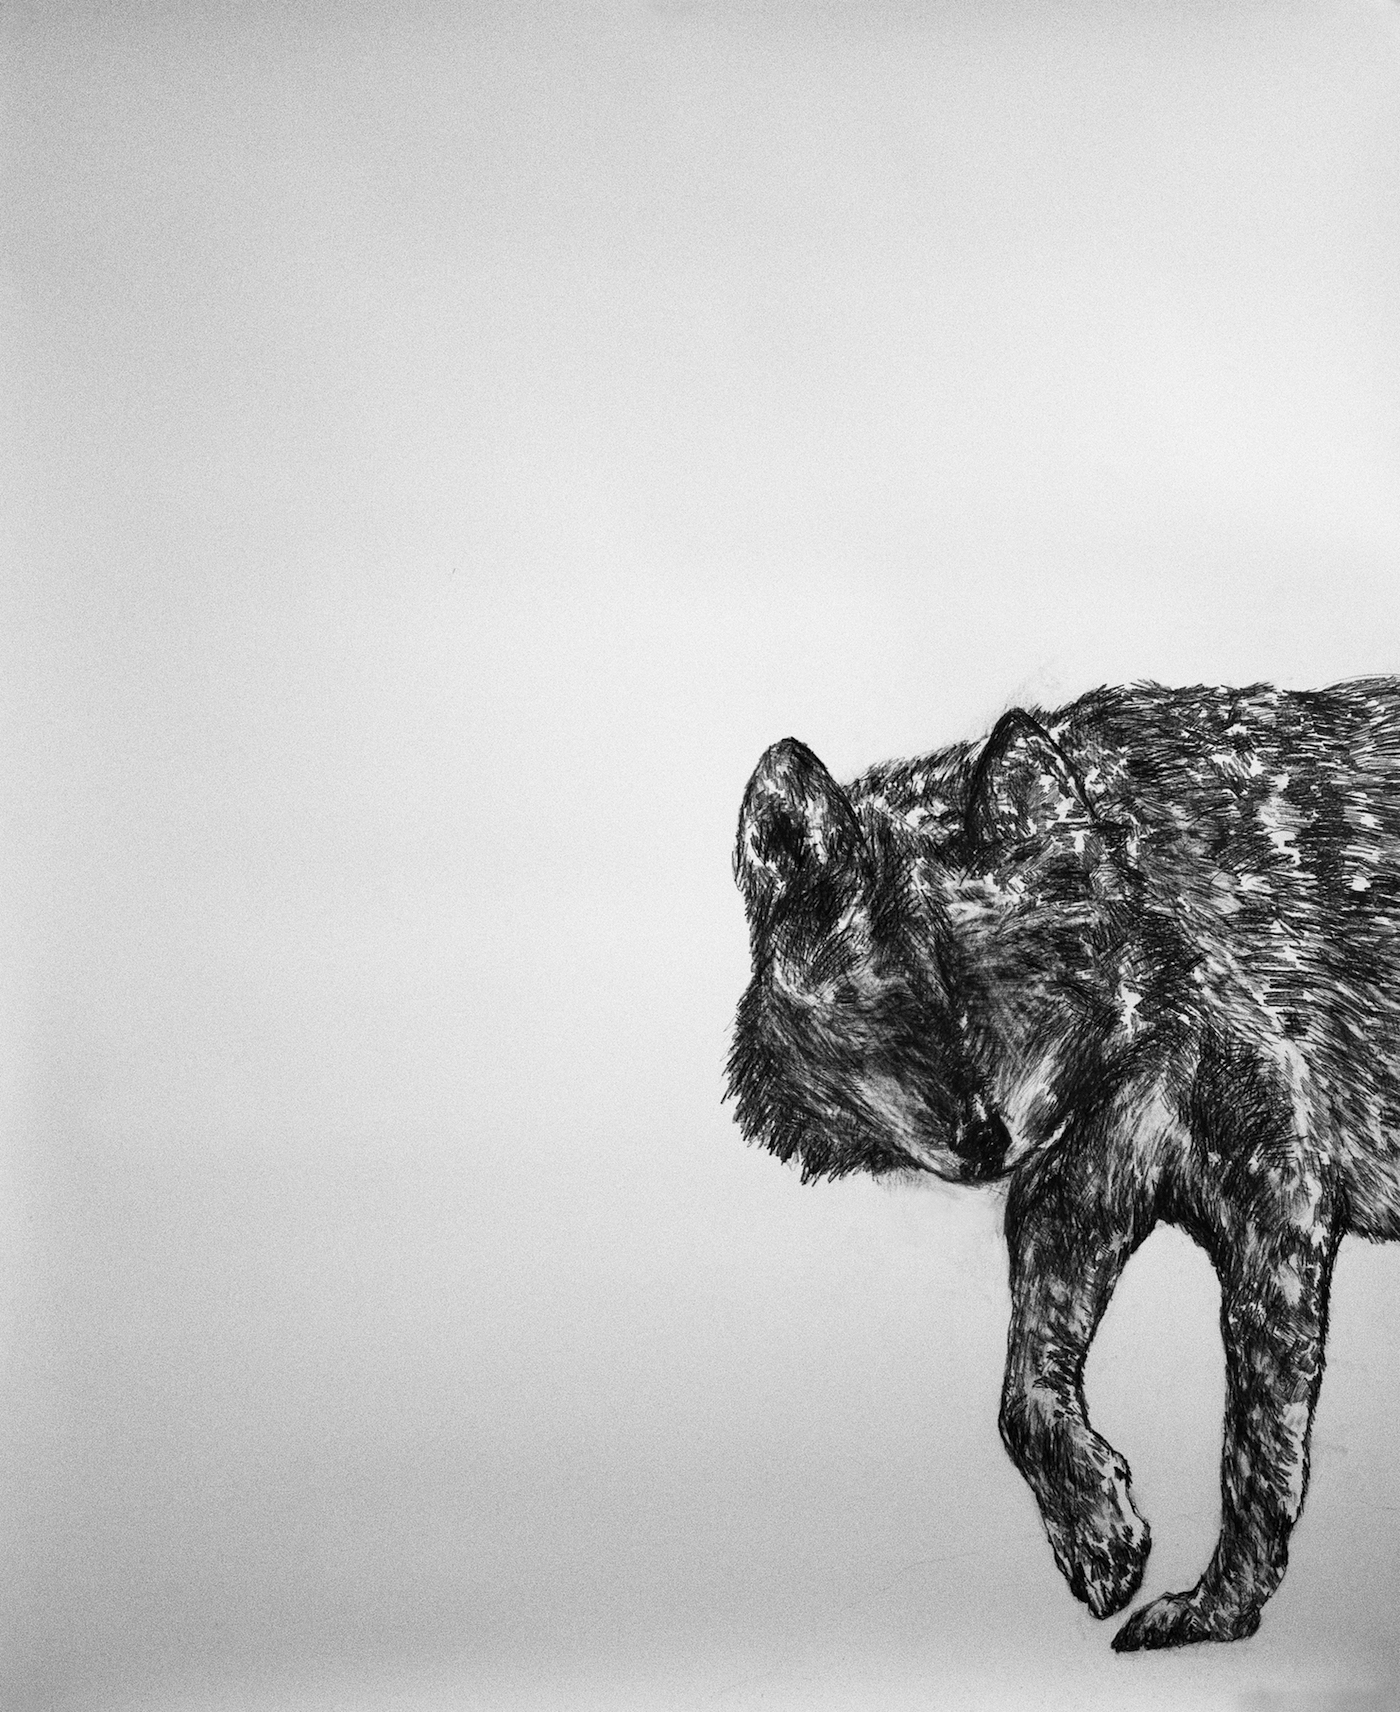 """From the series """"Animales"""", graphite on cotton paper, 143 x 115 cm., 2015."""